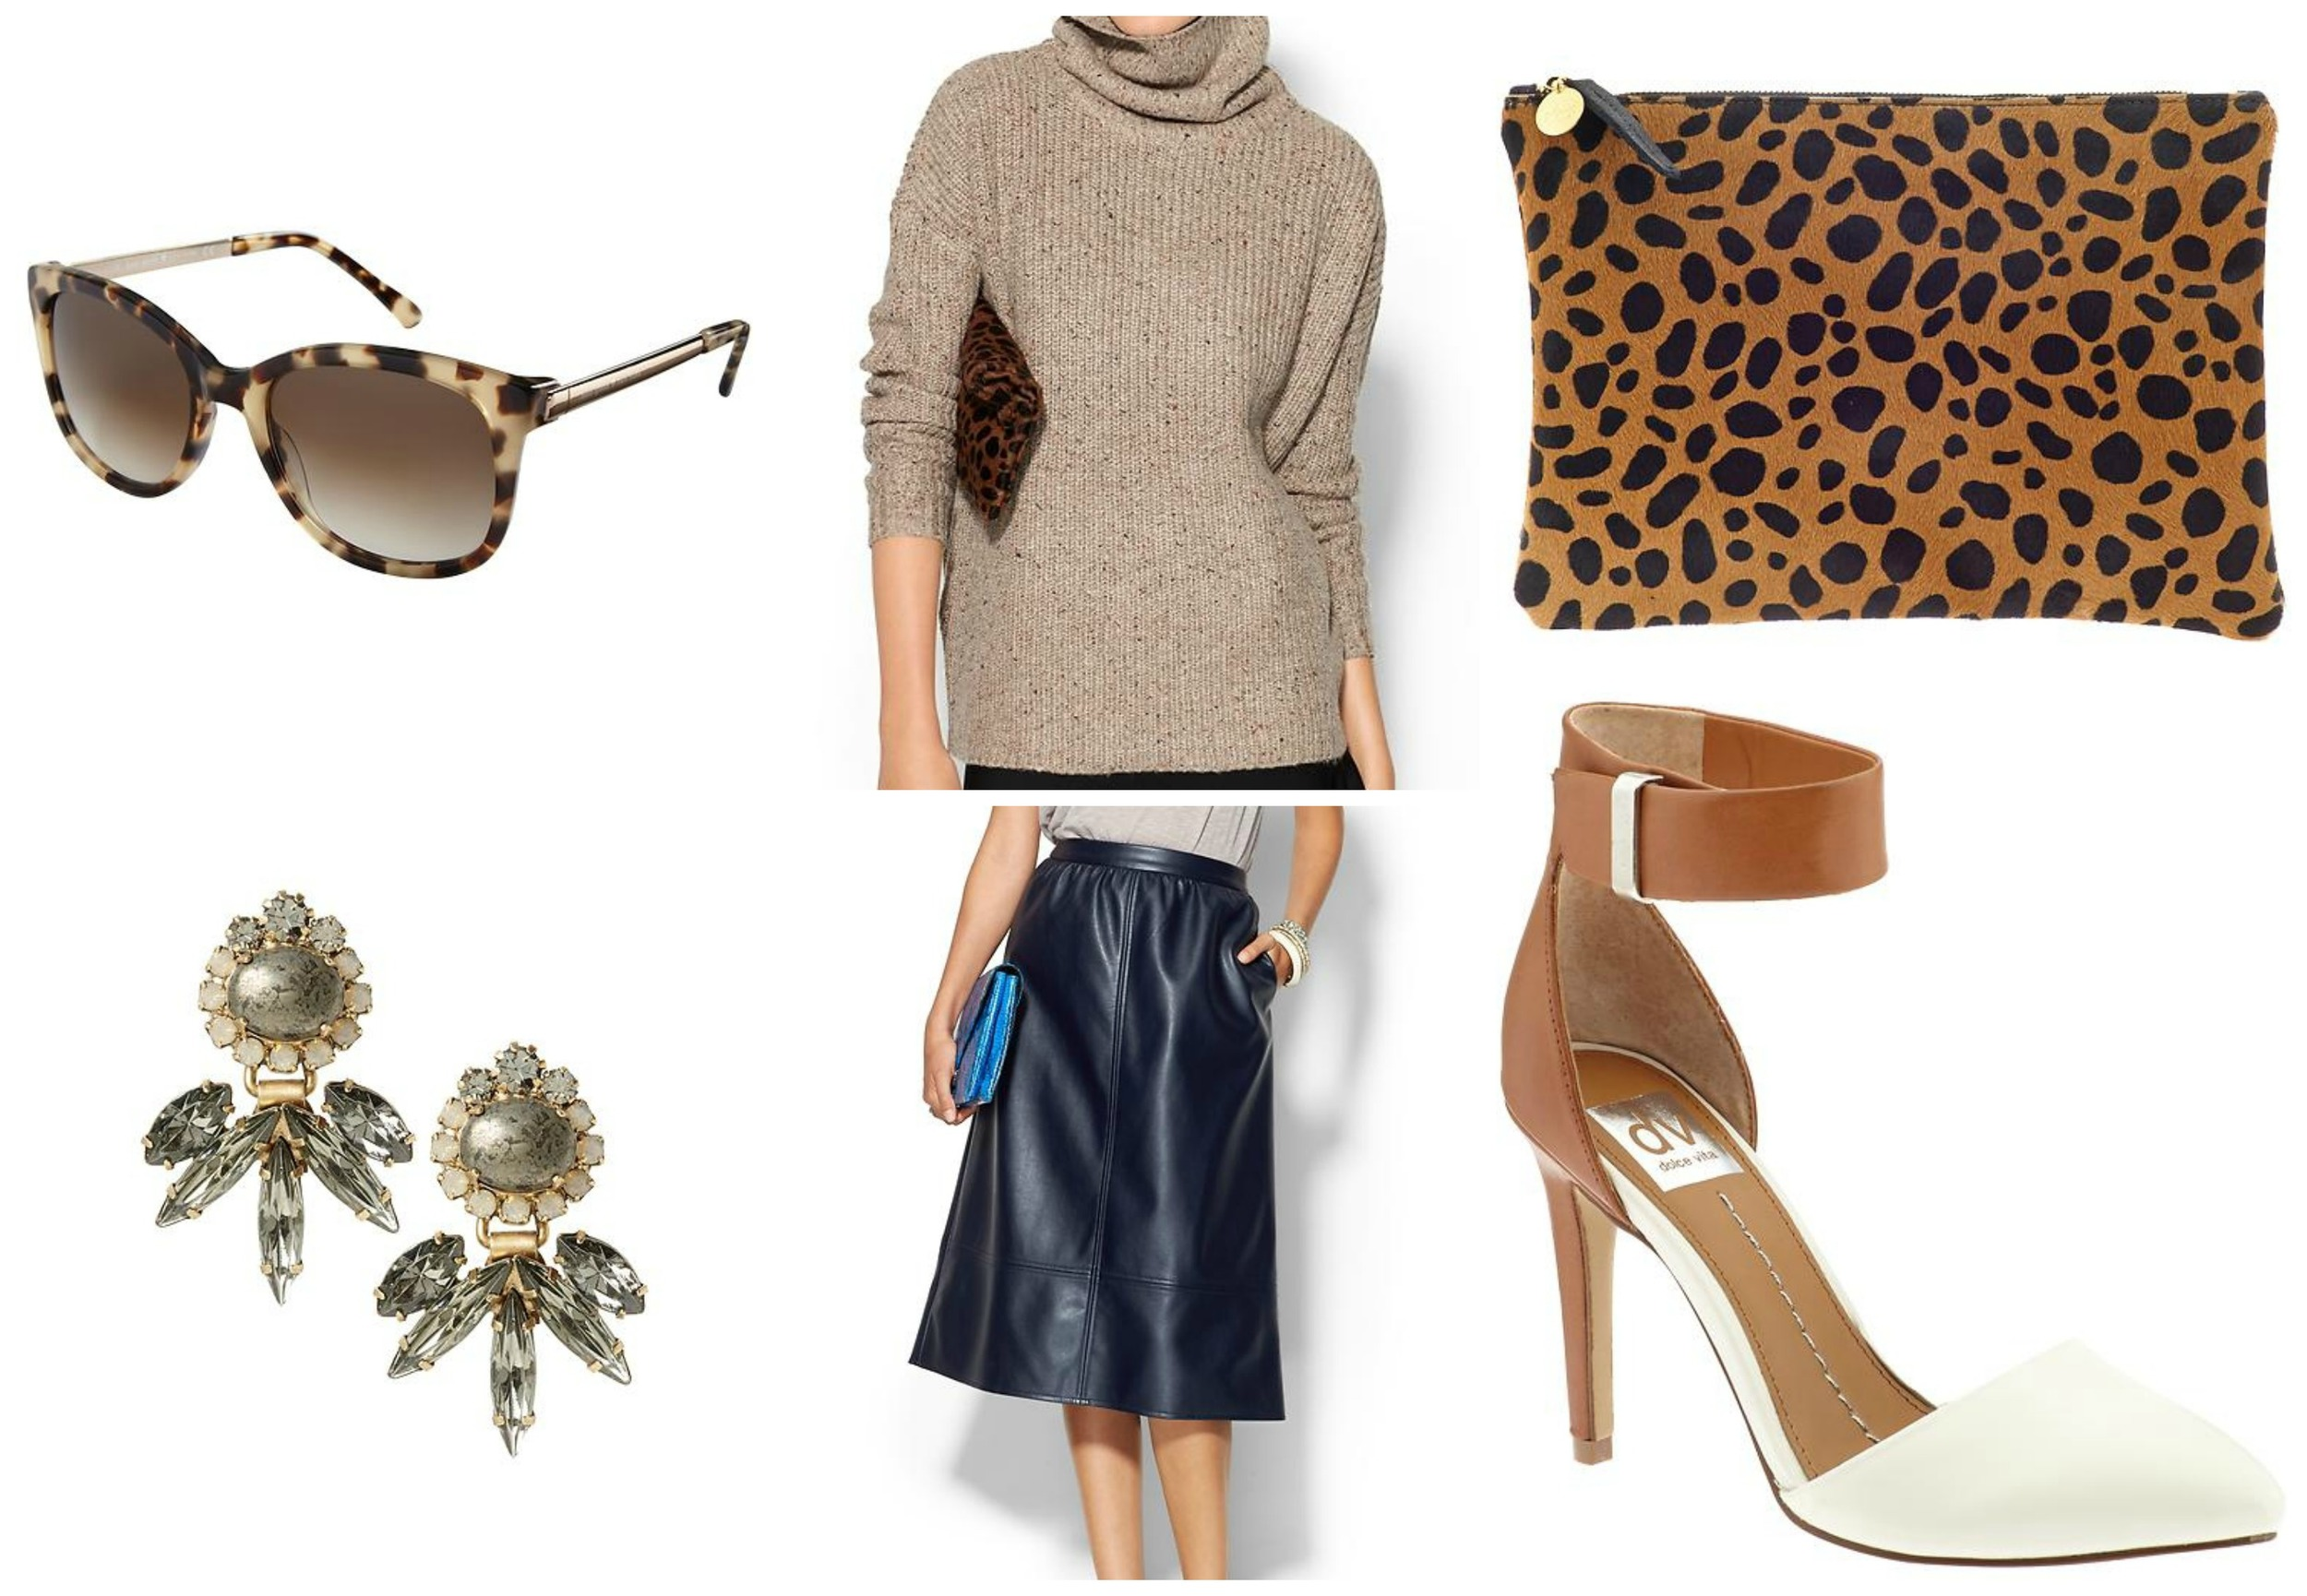 Fall outfit inspiration-Life with Lipstick On